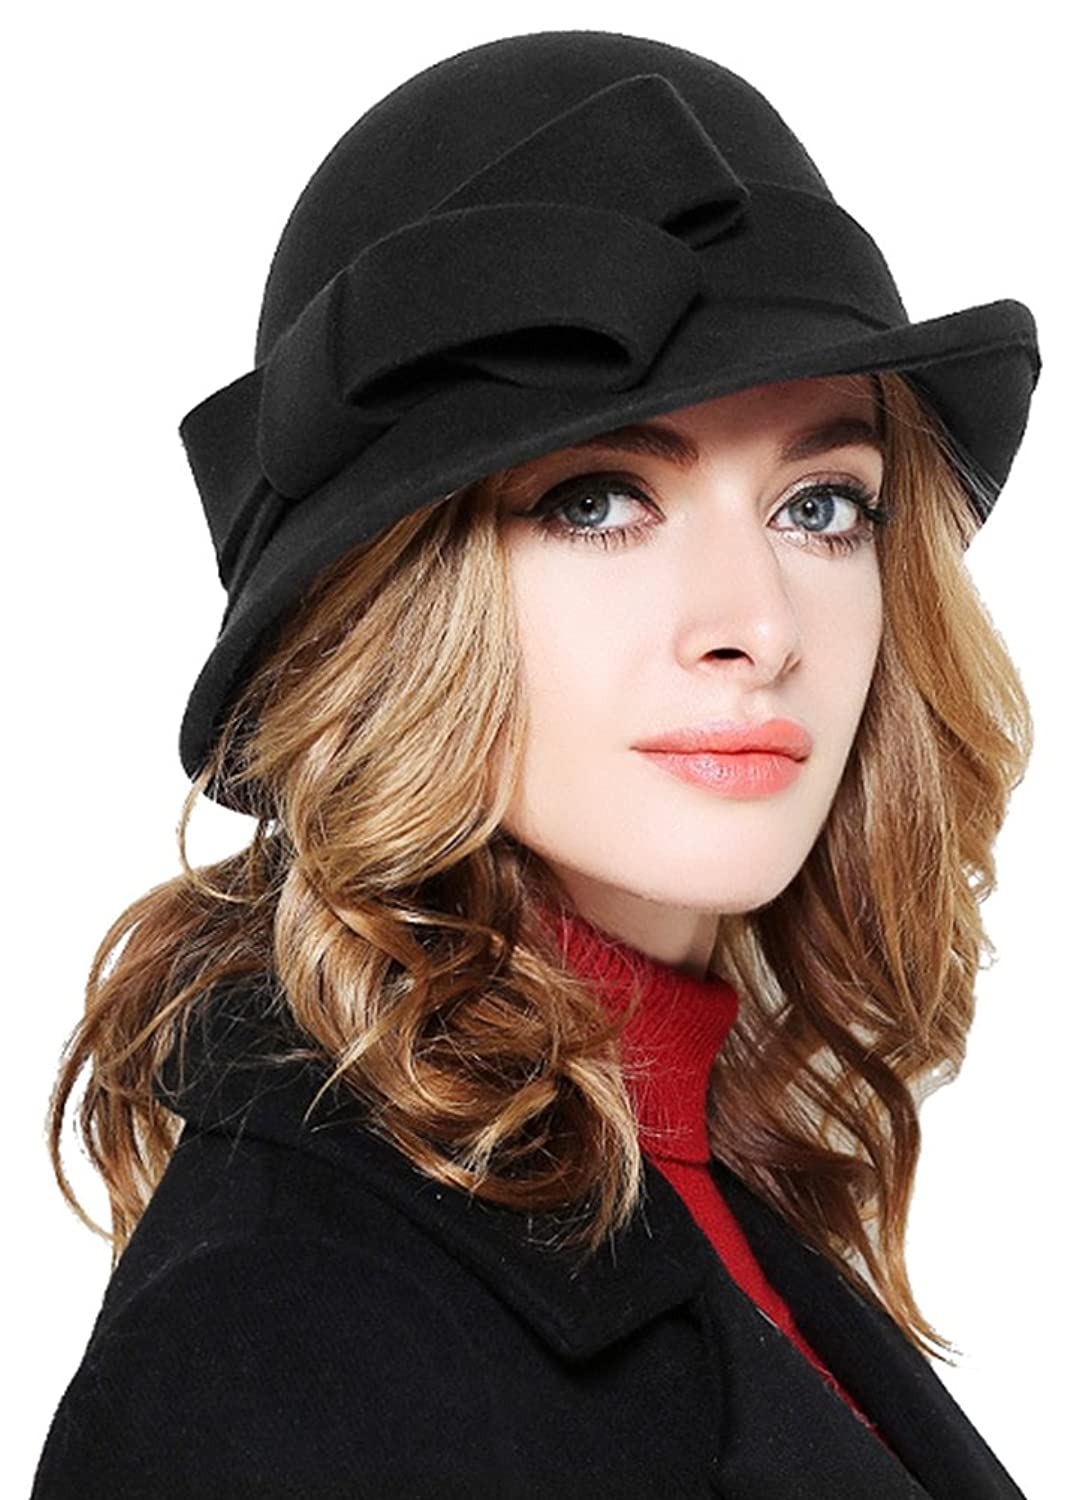 1940s Hats History Bellady Women Solid Color Winter Hat 100% Wool Cloche Bucket with Bow Accent $21.99 AT vintagedancer.com